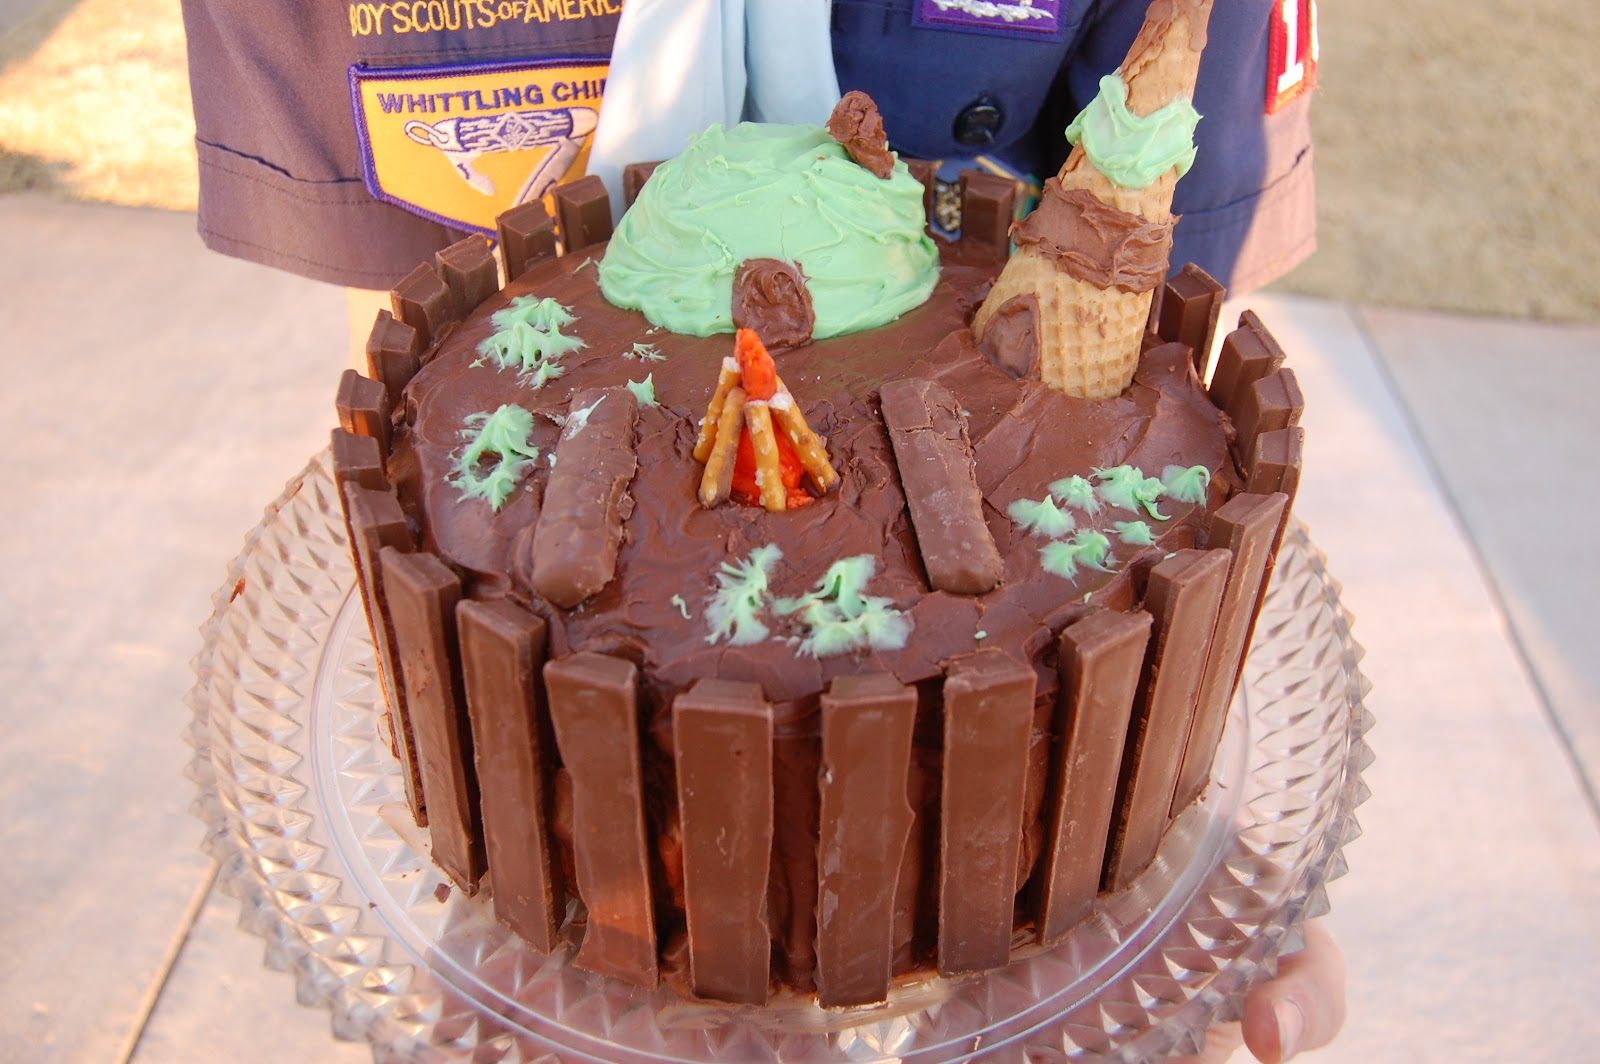 Babblings And More Boy Scout Cake Decorating Contest